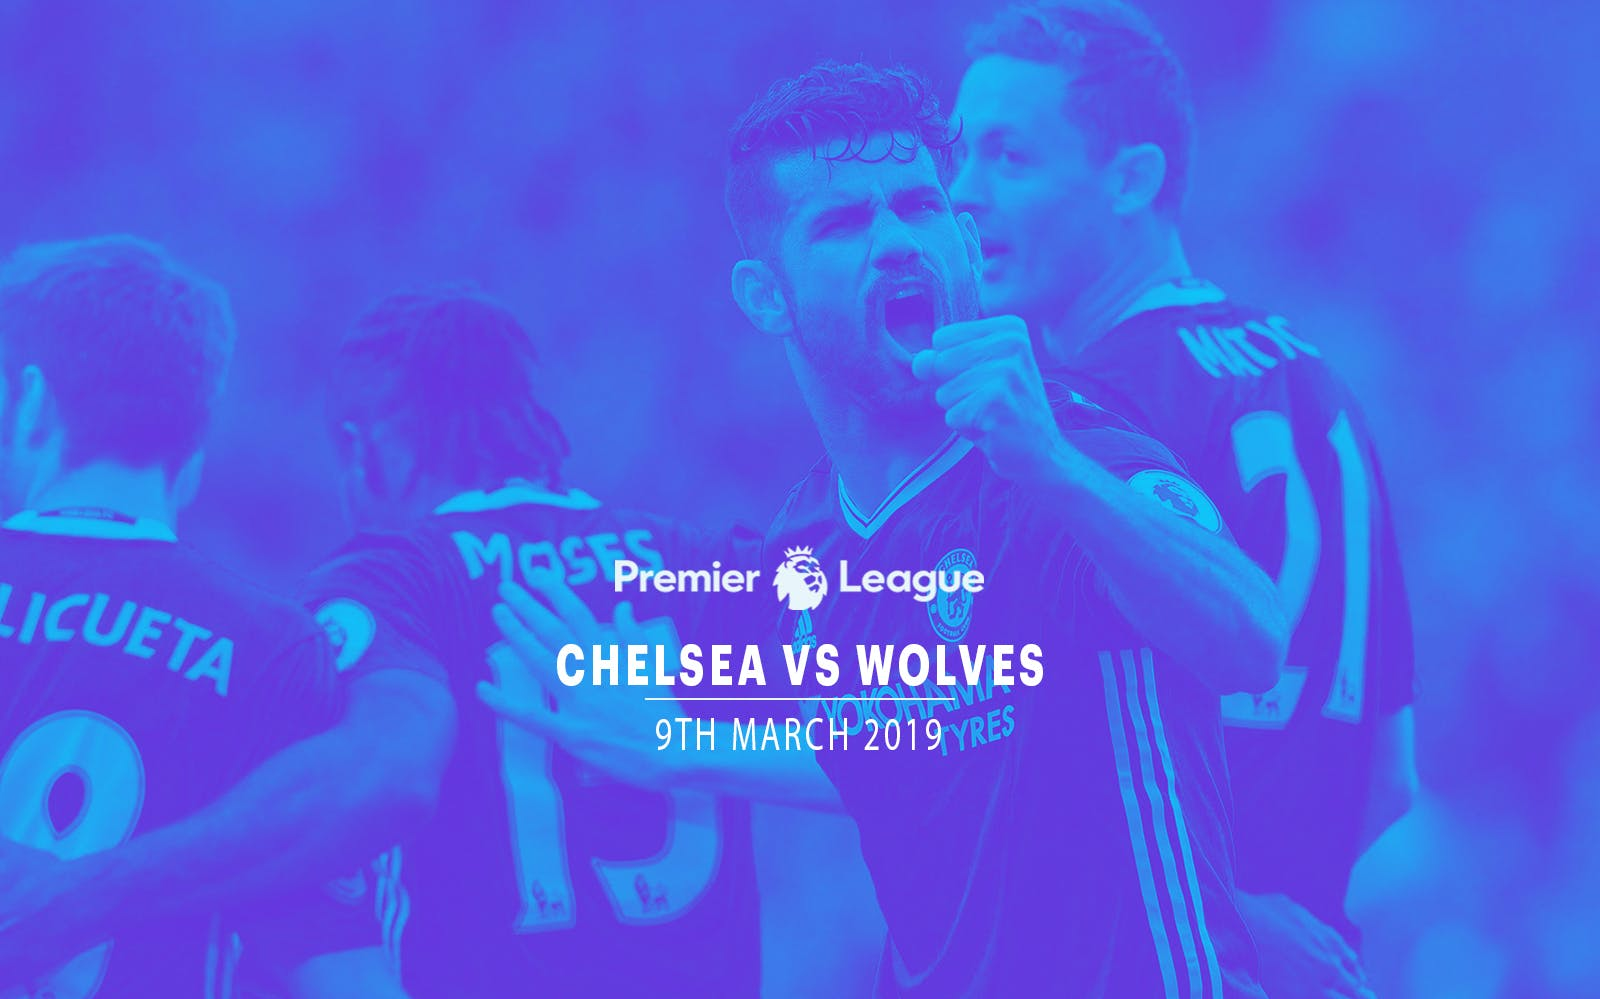 Chelsea vs Wolves - 9th Mar'19